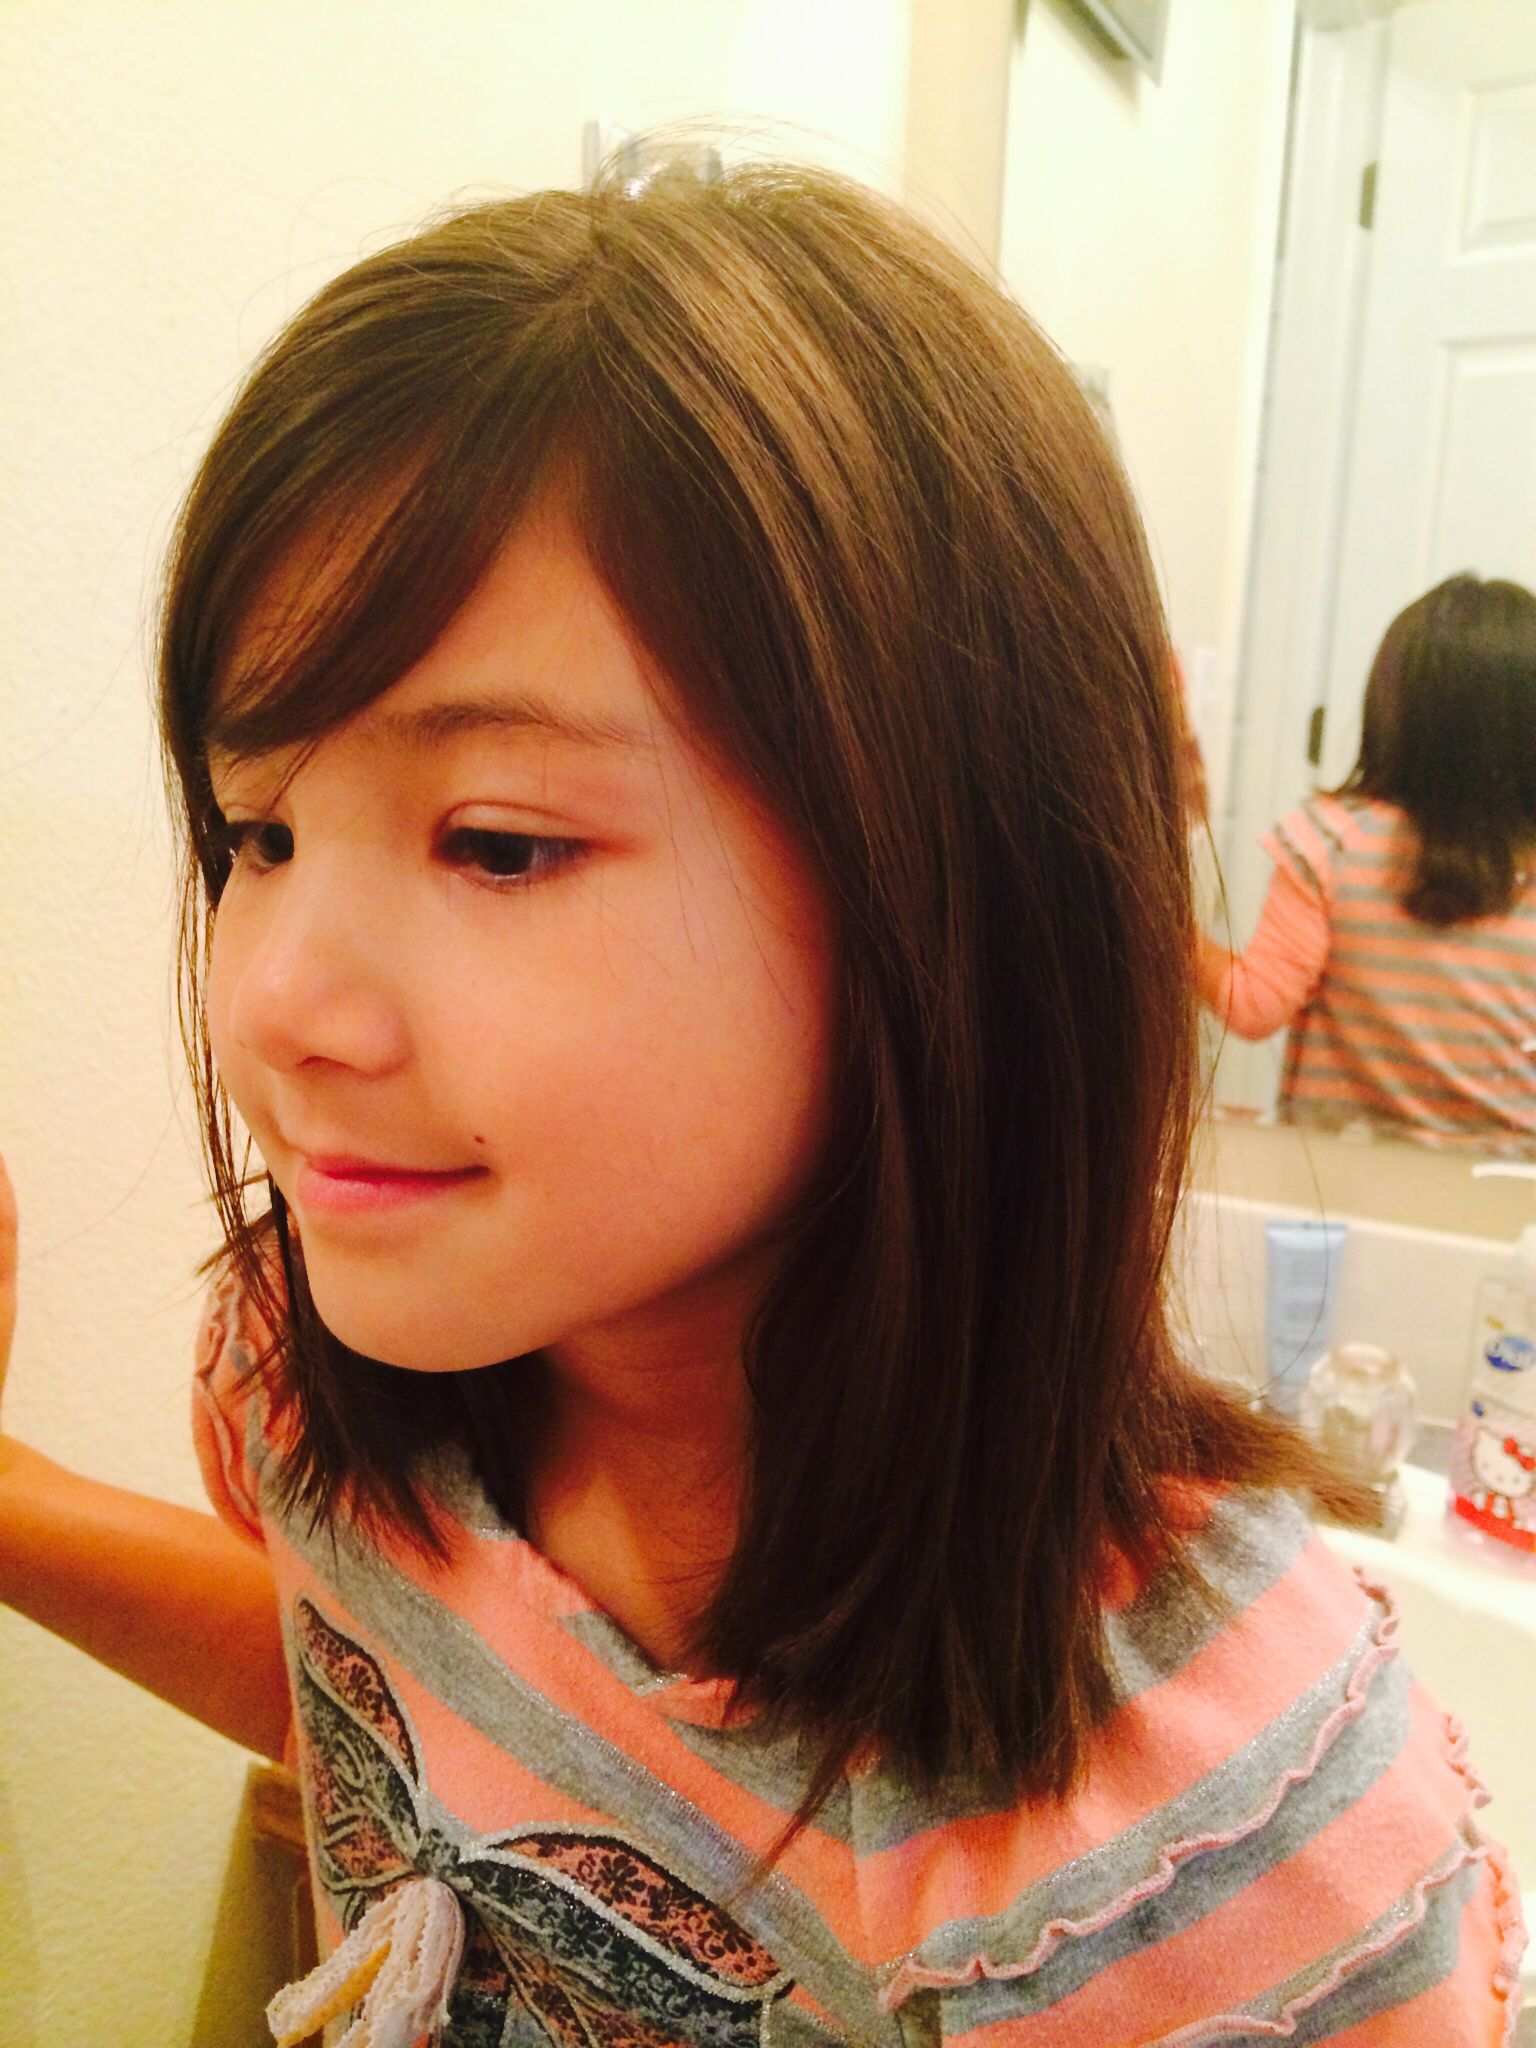 Medium length Little girl hair cut! | Hair Cuts | Pinterest | Girl ...